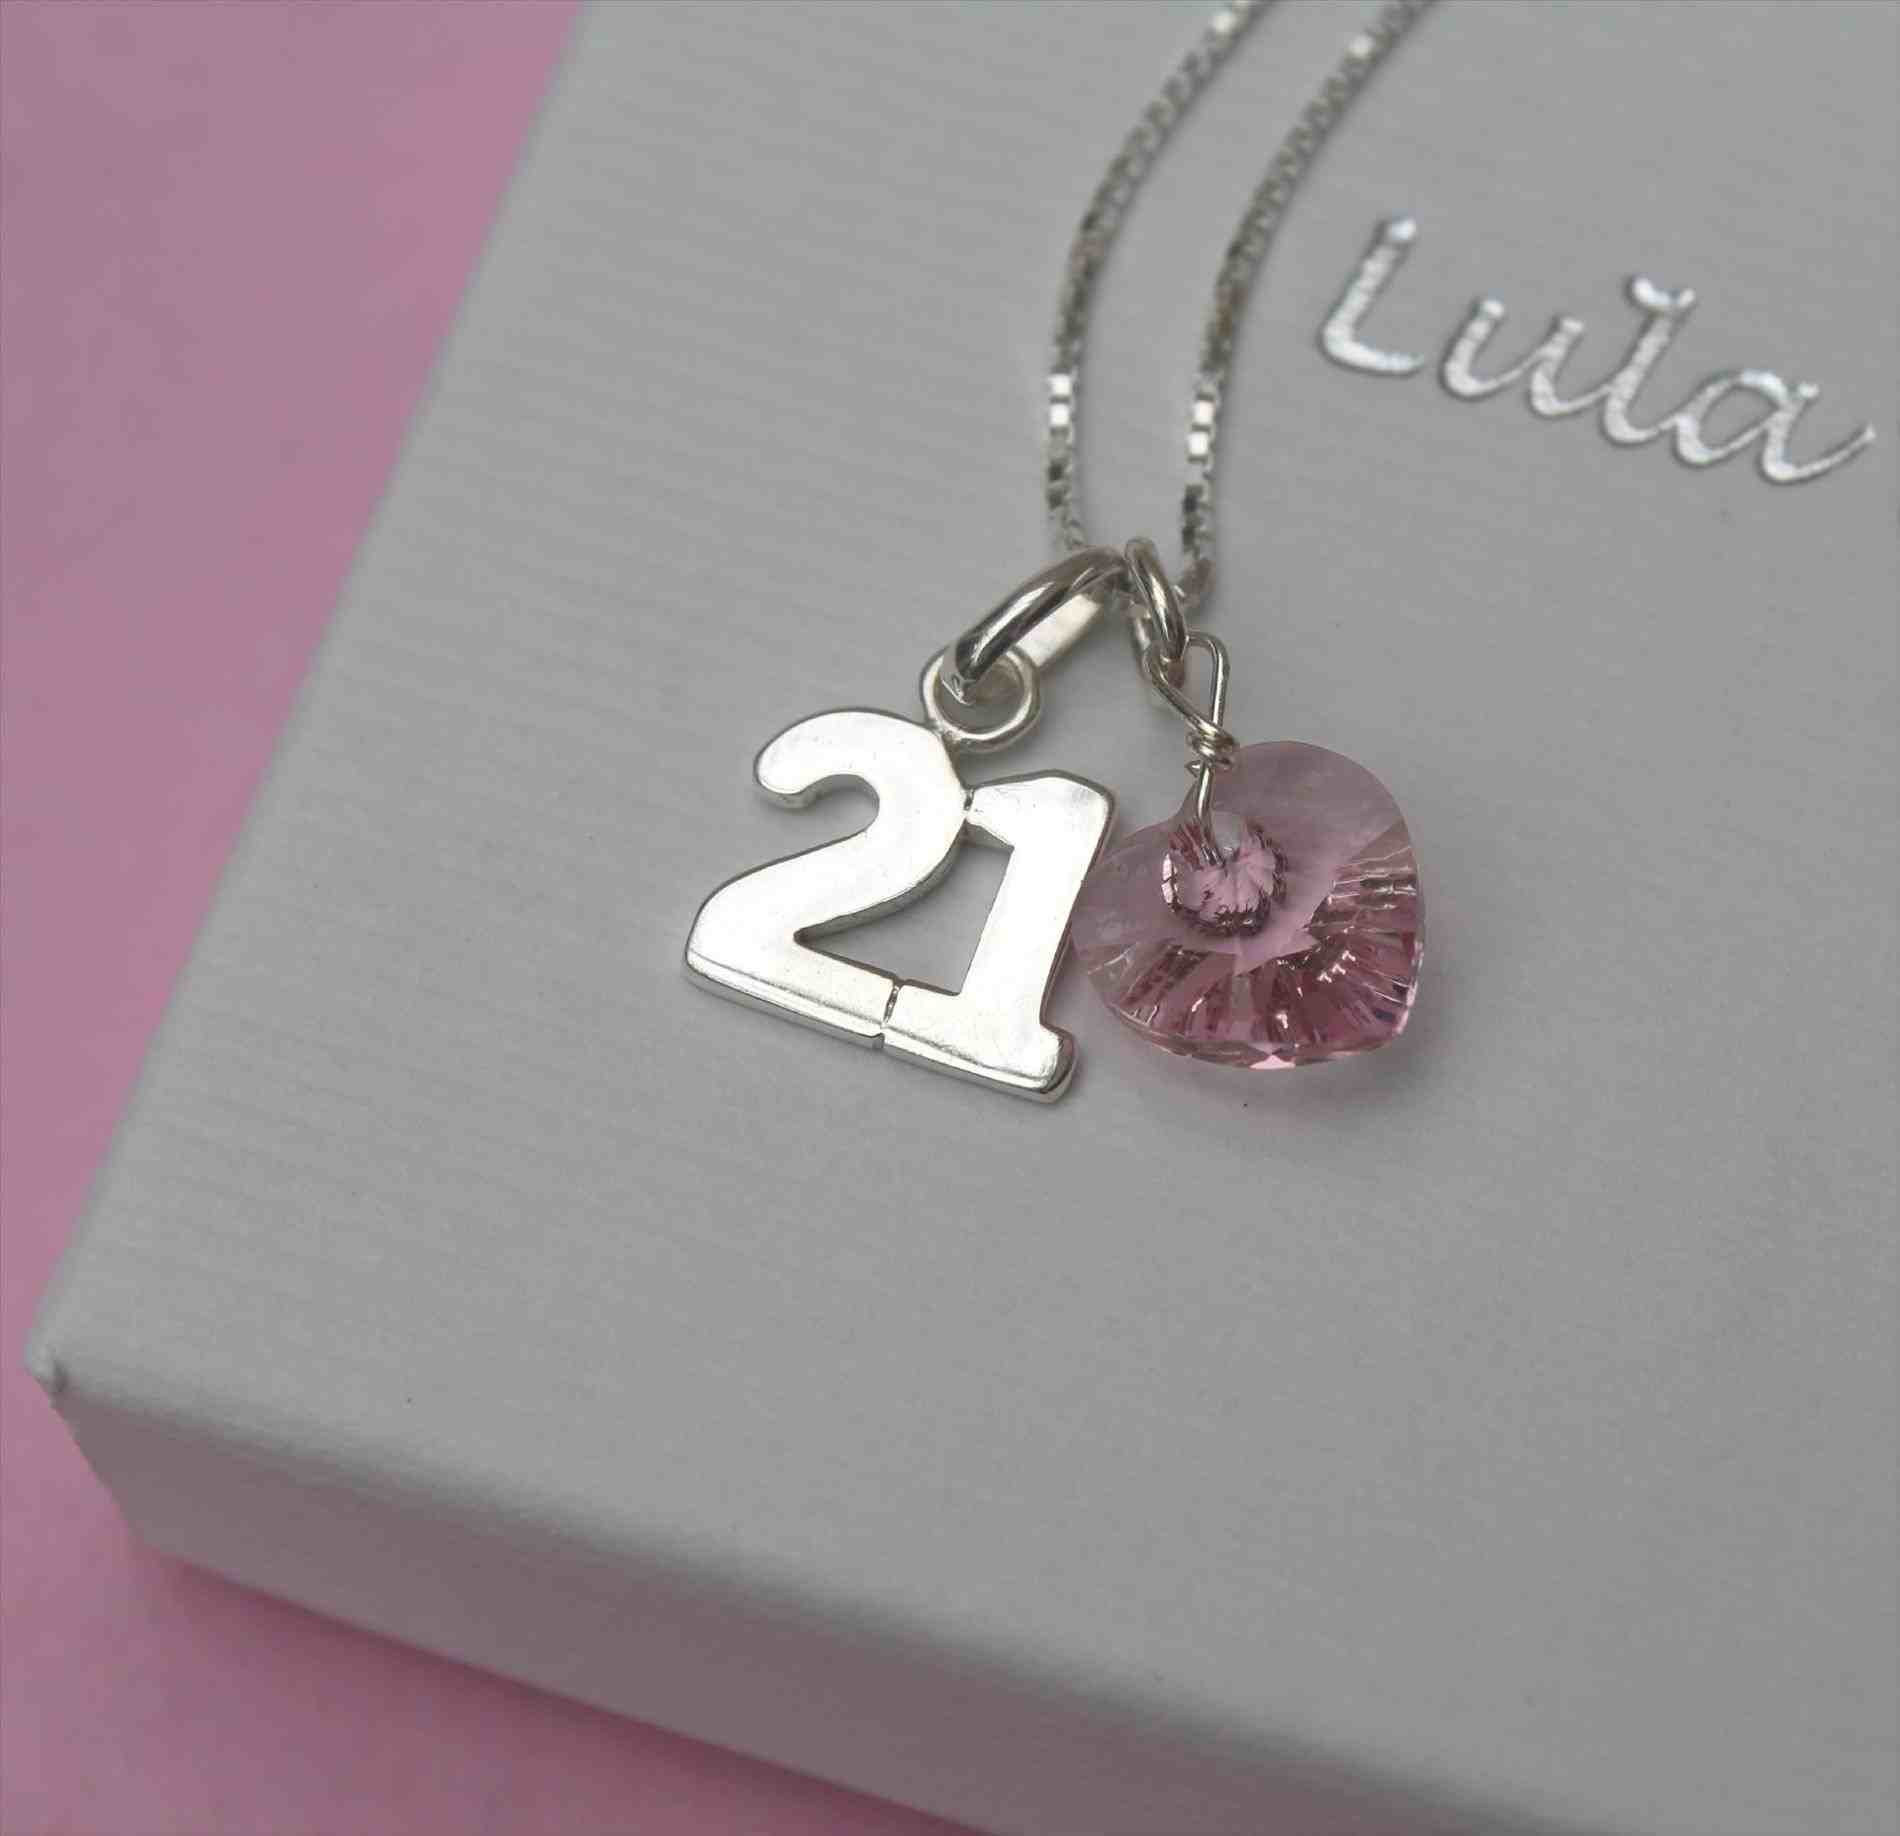 Best ideas about 21St Birthday Gift Ideas For Daughter . Save or Pin More About 21st birthday t ideas for daughter Update Now.